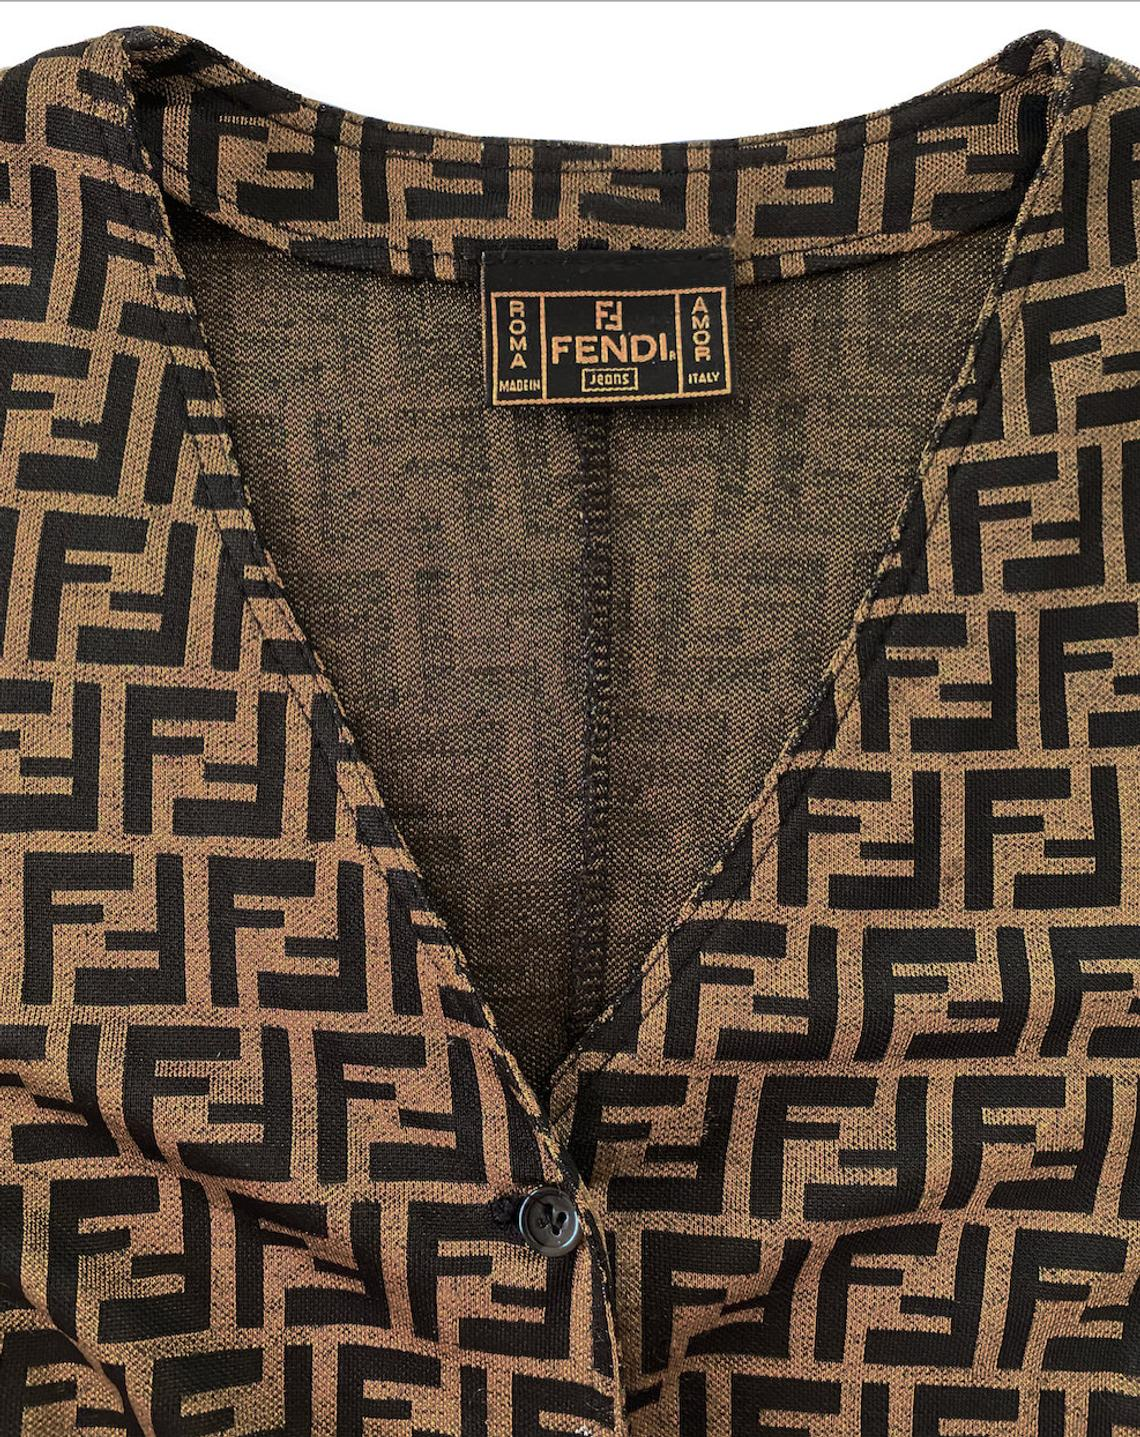 FRUIT Vintage 1990s Fendi Zucca Print Logo Button Up Cardigan. Features a classic button up front and cardigan shape and graphic Fendi FF logos all over.